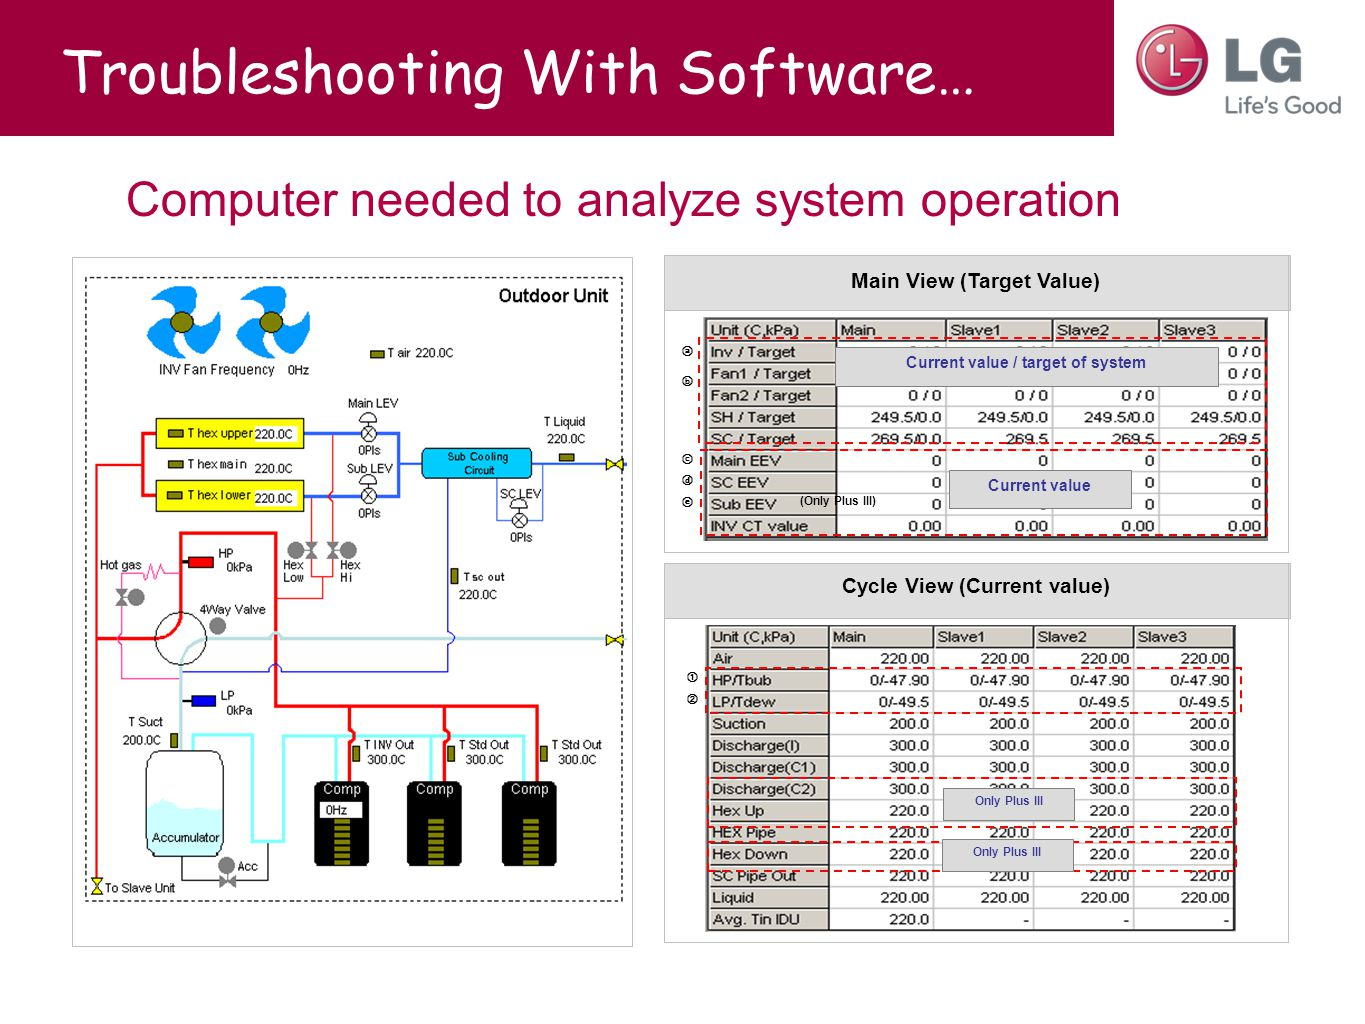 Troubleshooting With Software… Cycle View (Current value) Main View (Target Value) Current value / target of system Current value ⓐ ⓑ ⓒ ⓓ ⓔ (Only Plus III) ① ② Only Plus III Computer needed to analyze system operation